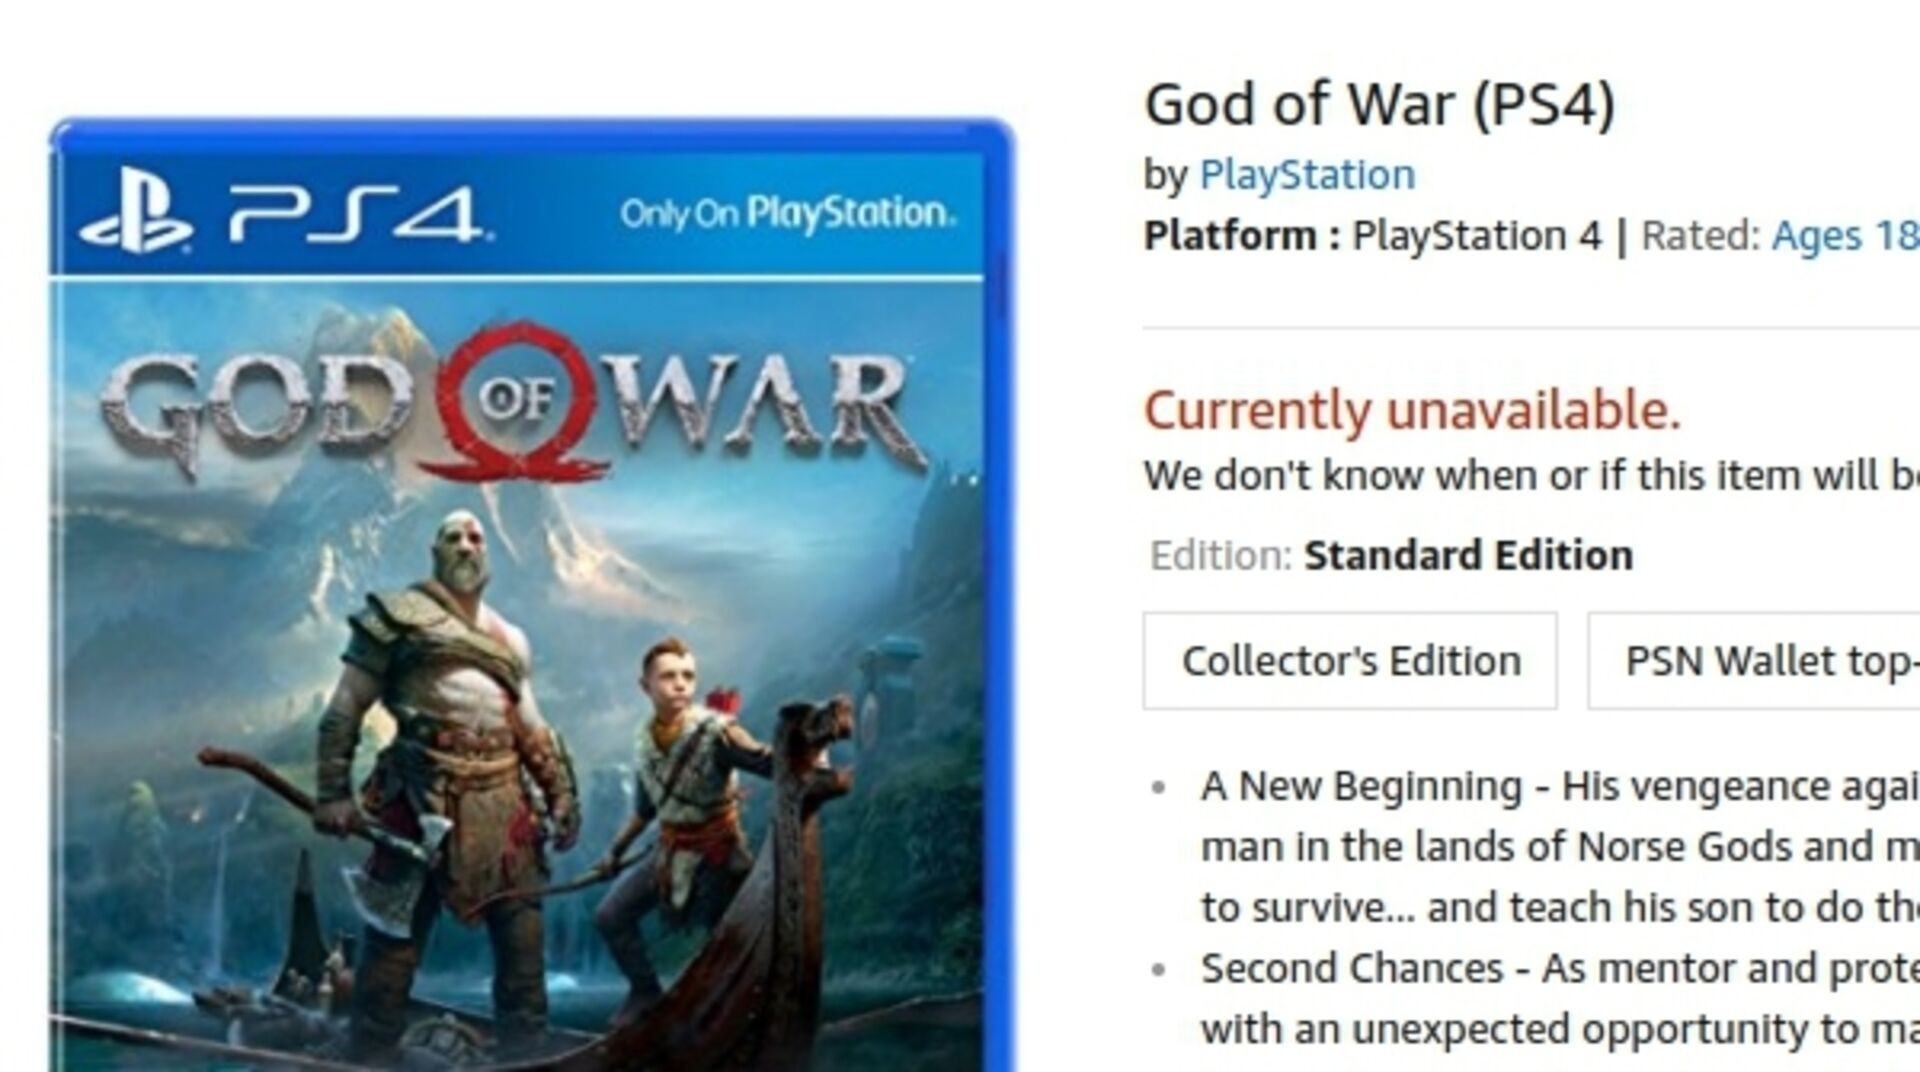 Upcoming PS4 exclusives God of War, Detroit and Spider-Man